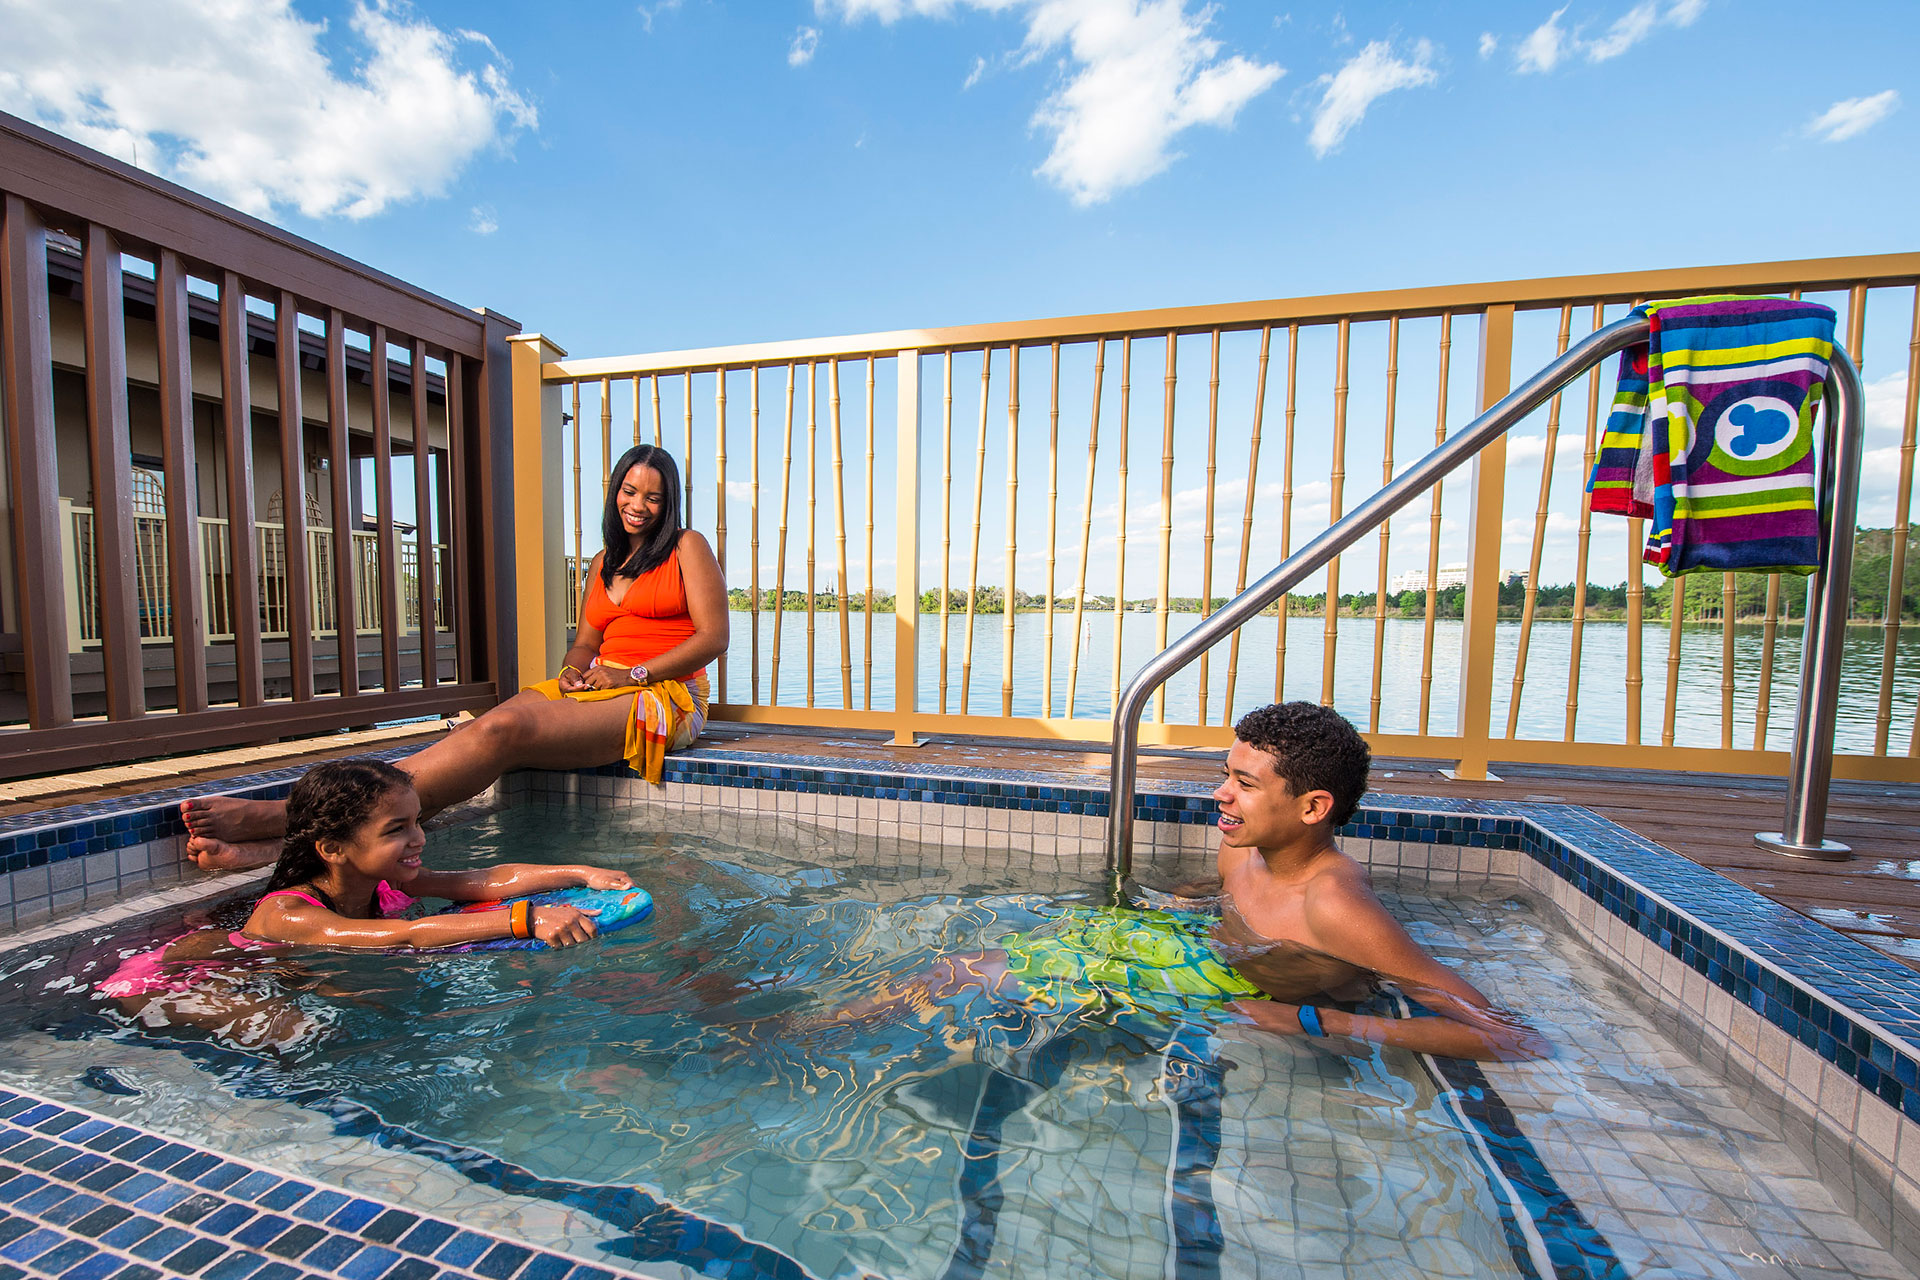 Plunge Pool at Disney's Polynesian Villas; Courtesy of Disney